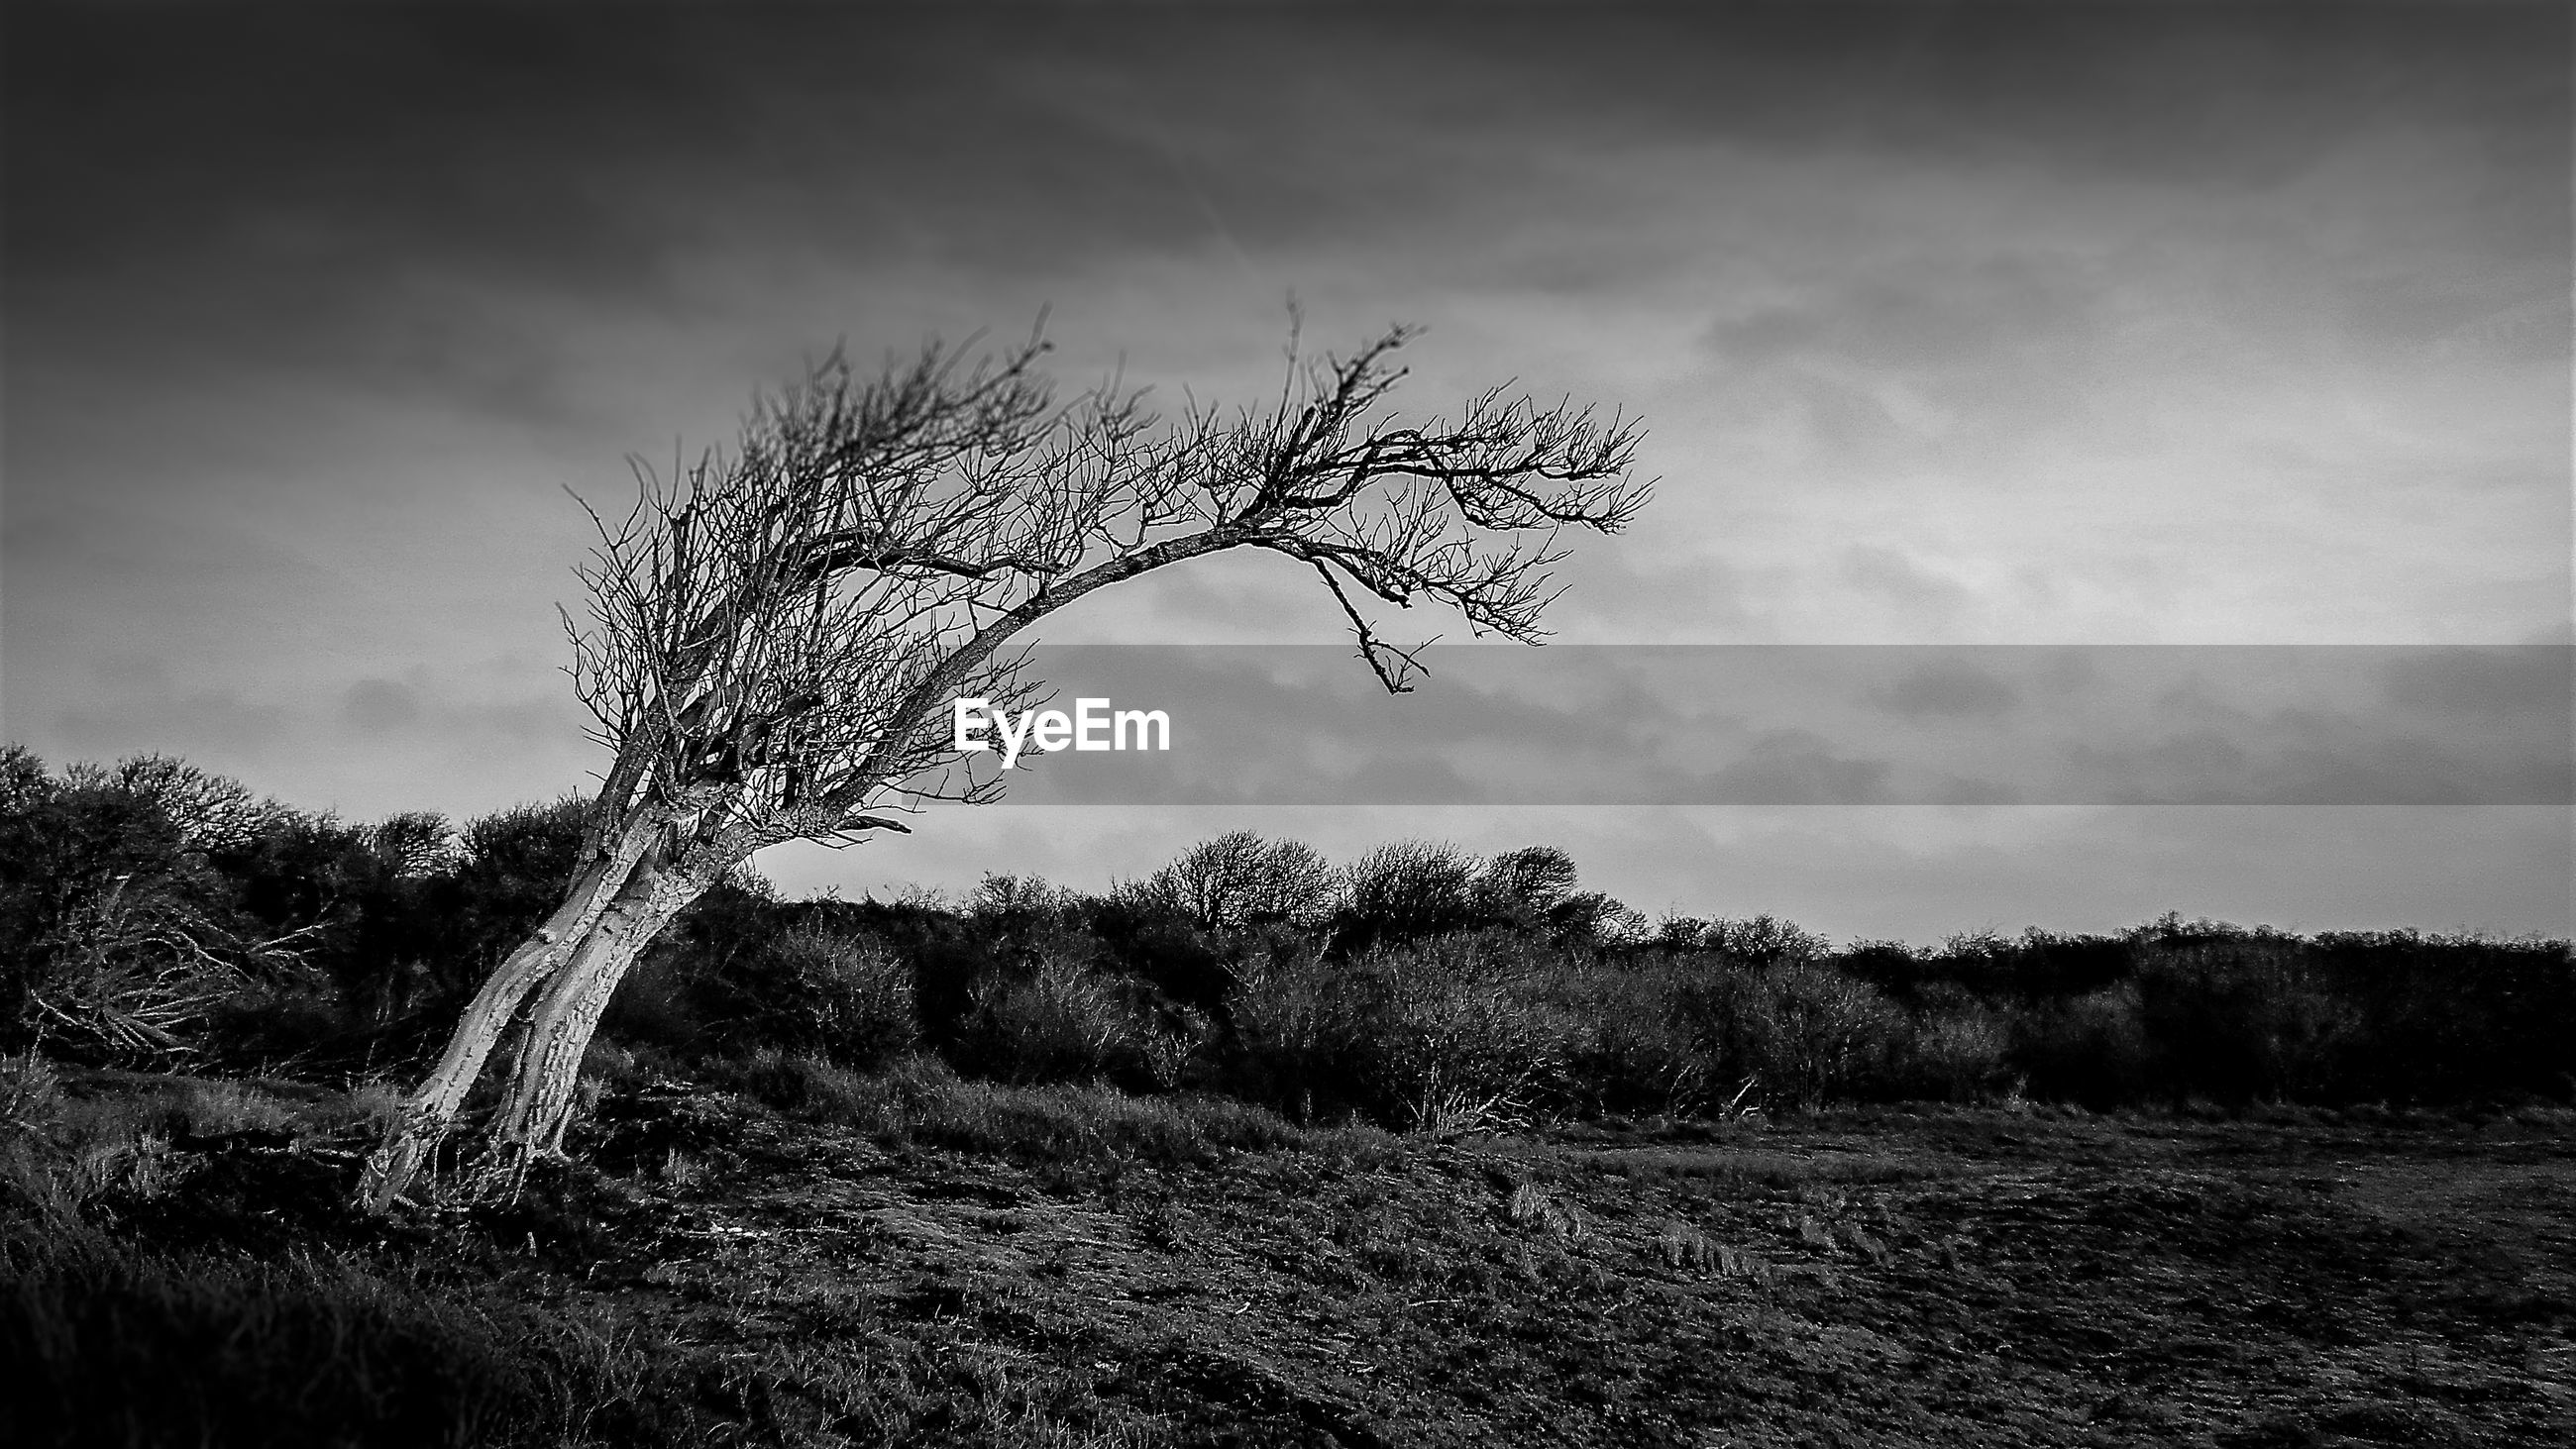 VIEW OF BARE TREE ON LANDSCAPE AGAINST SKY